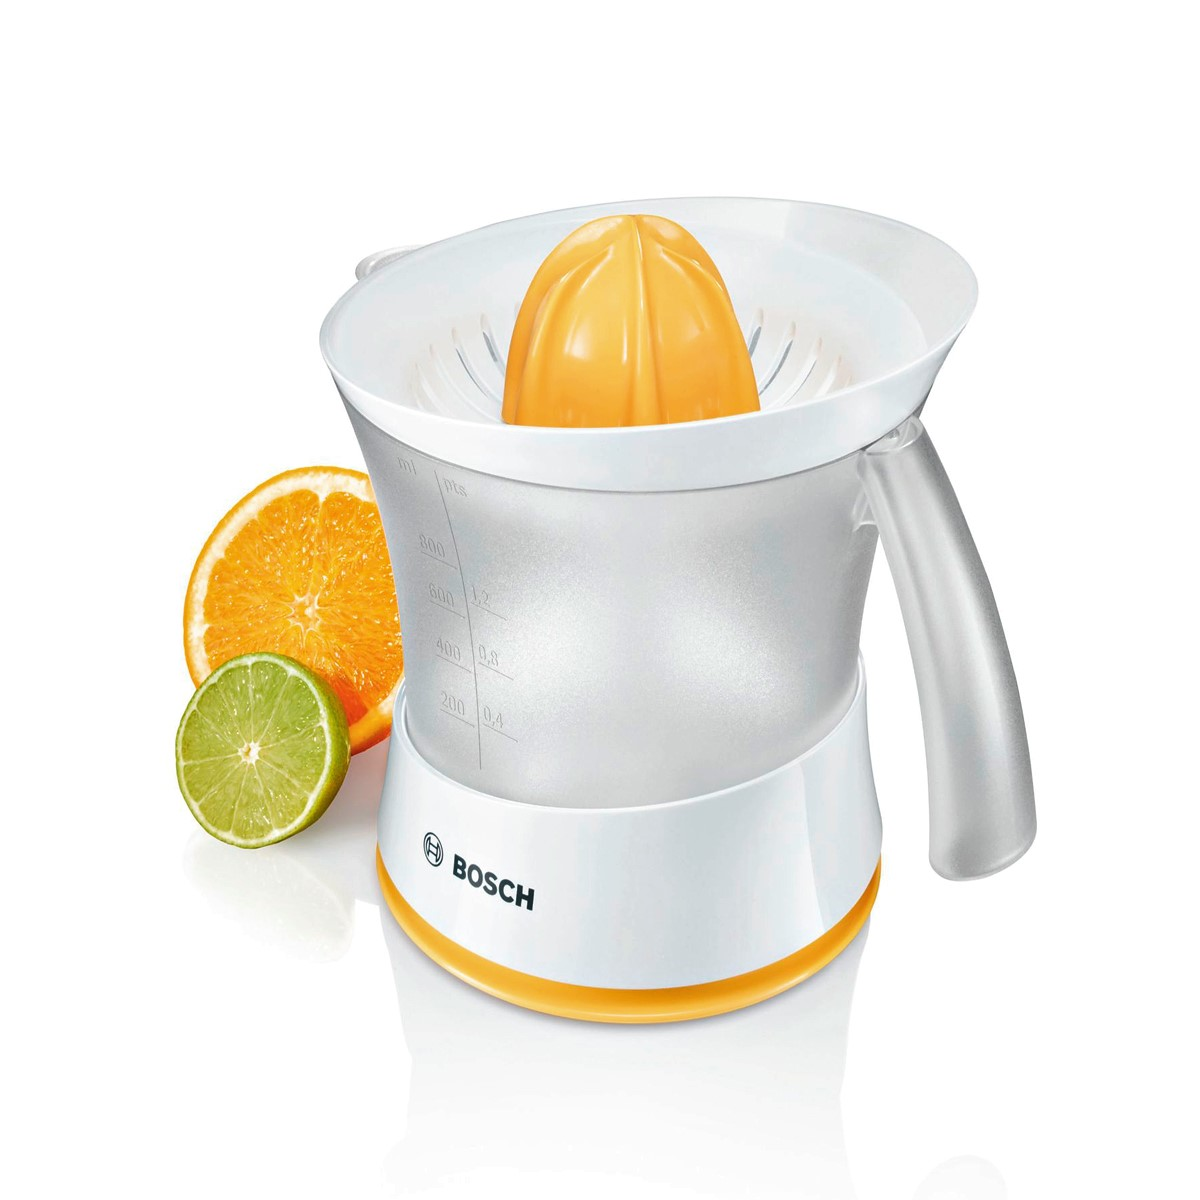 bosch kitchen appliance juicer citrus press mcp3000. Black Bedroom Furniture Sets. Home Design Ideas